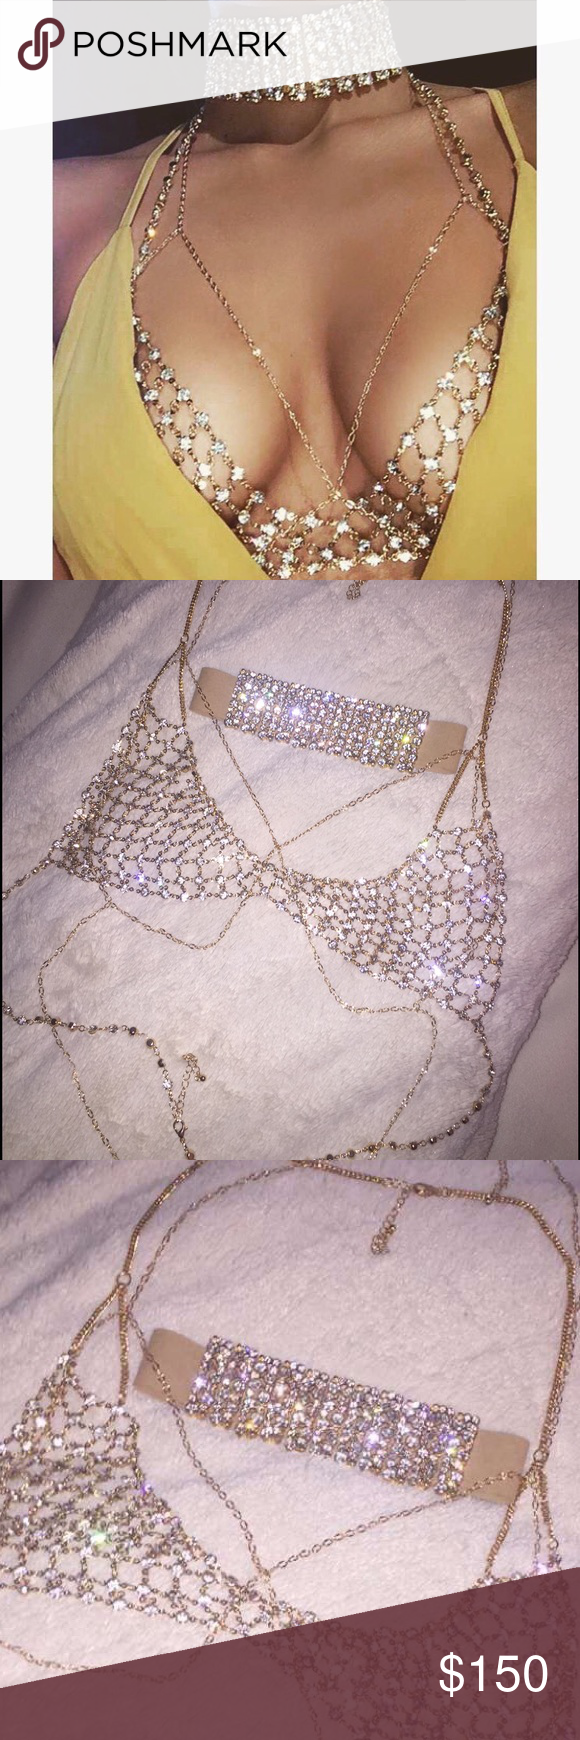 45b9f1788bf67 Diamond Choker and Bralette with body chain As seen on Desi Perkins. Will  fit a small  medium WINDSOR Intimates   Sleepwear Bras